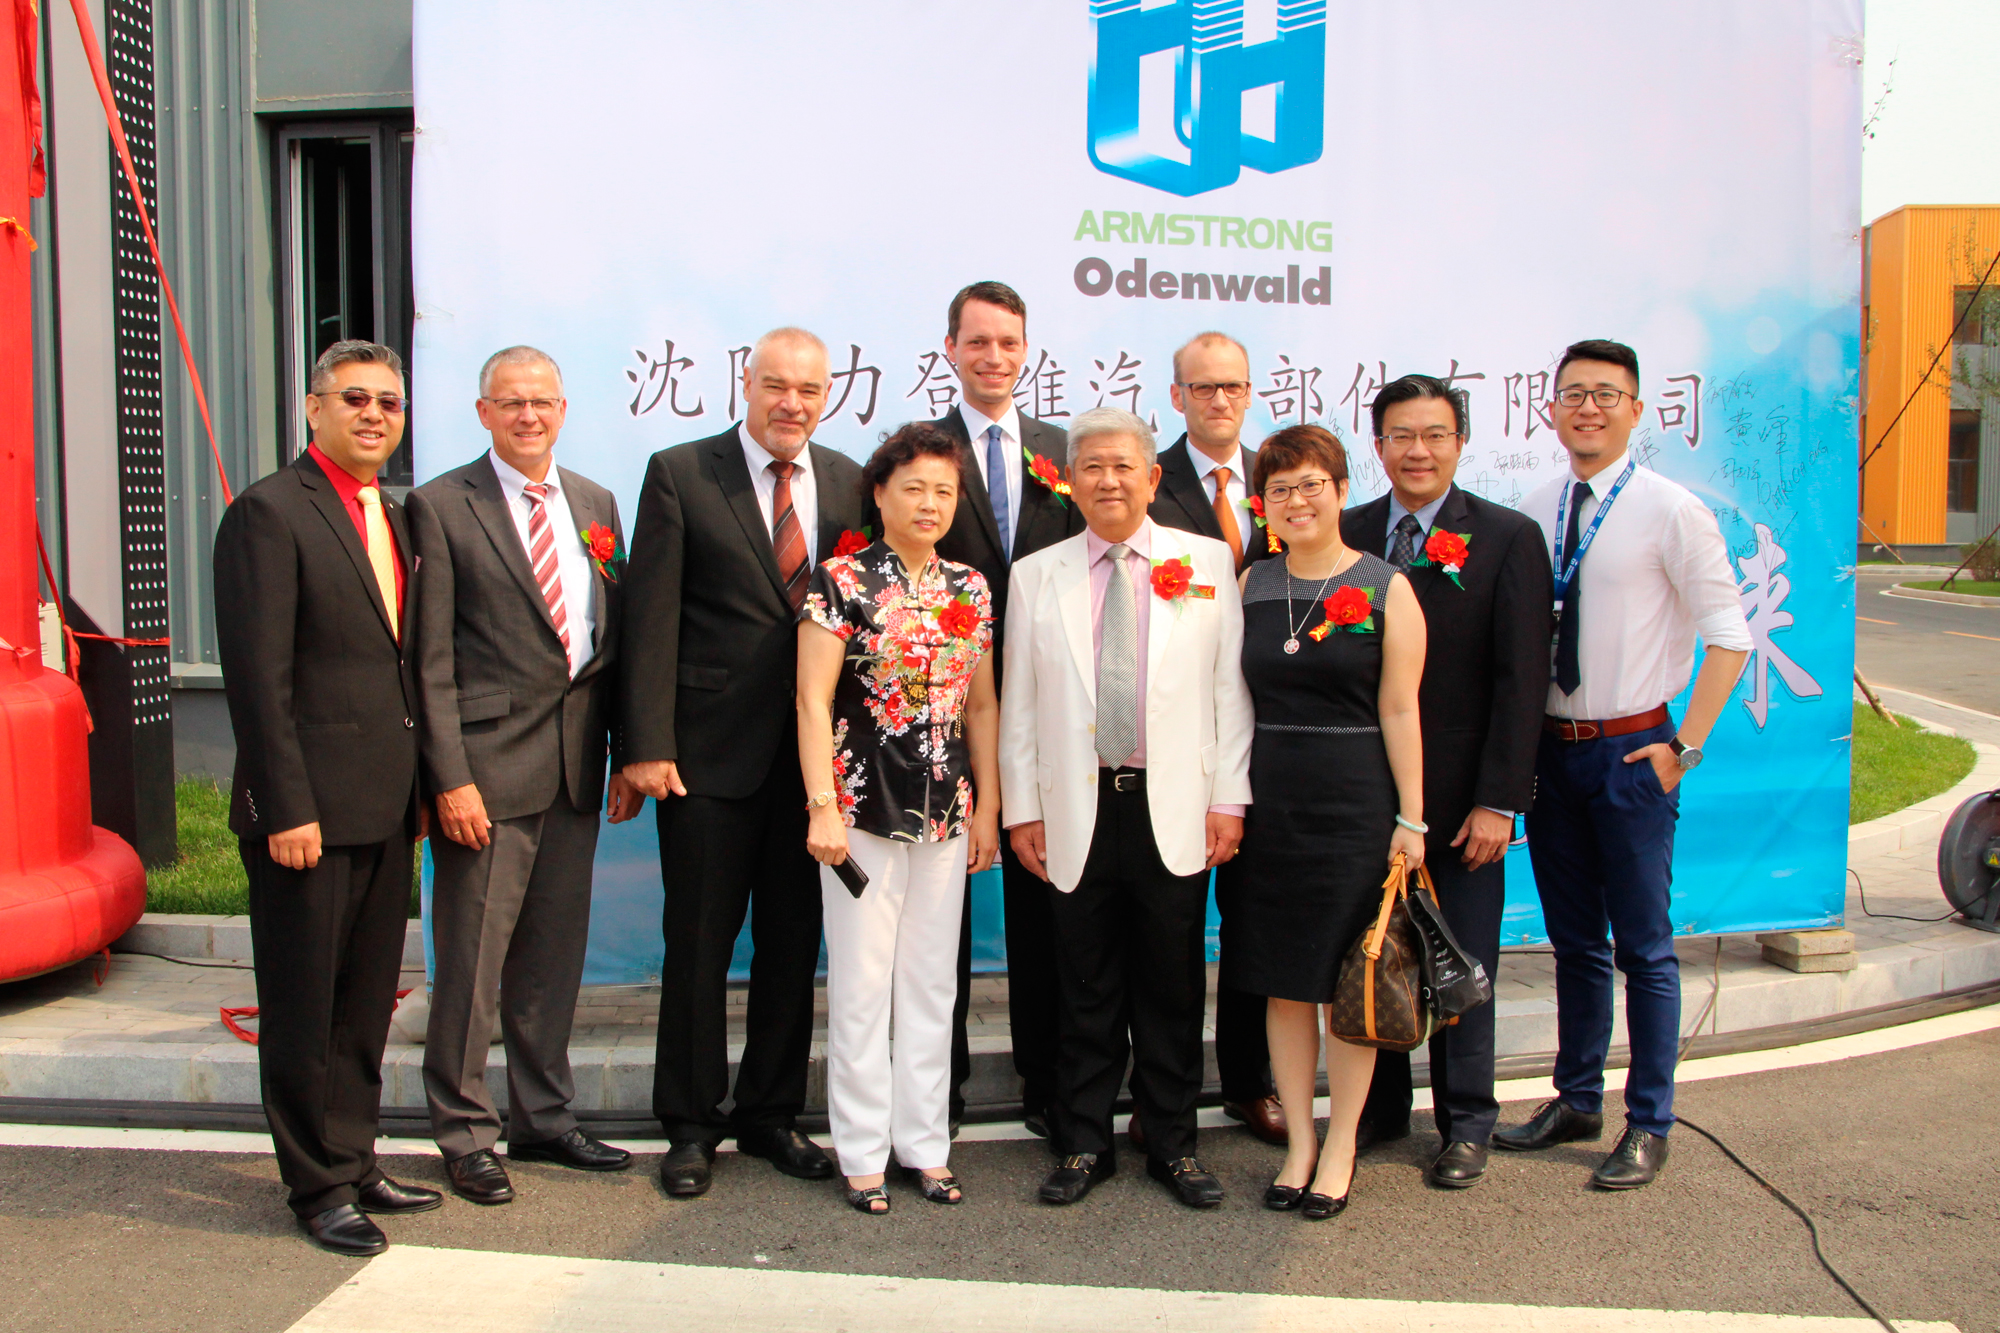 Official Ribbon Cutting Ceremony for Armstrong Odenwald Shenyang, Liaoning (China)